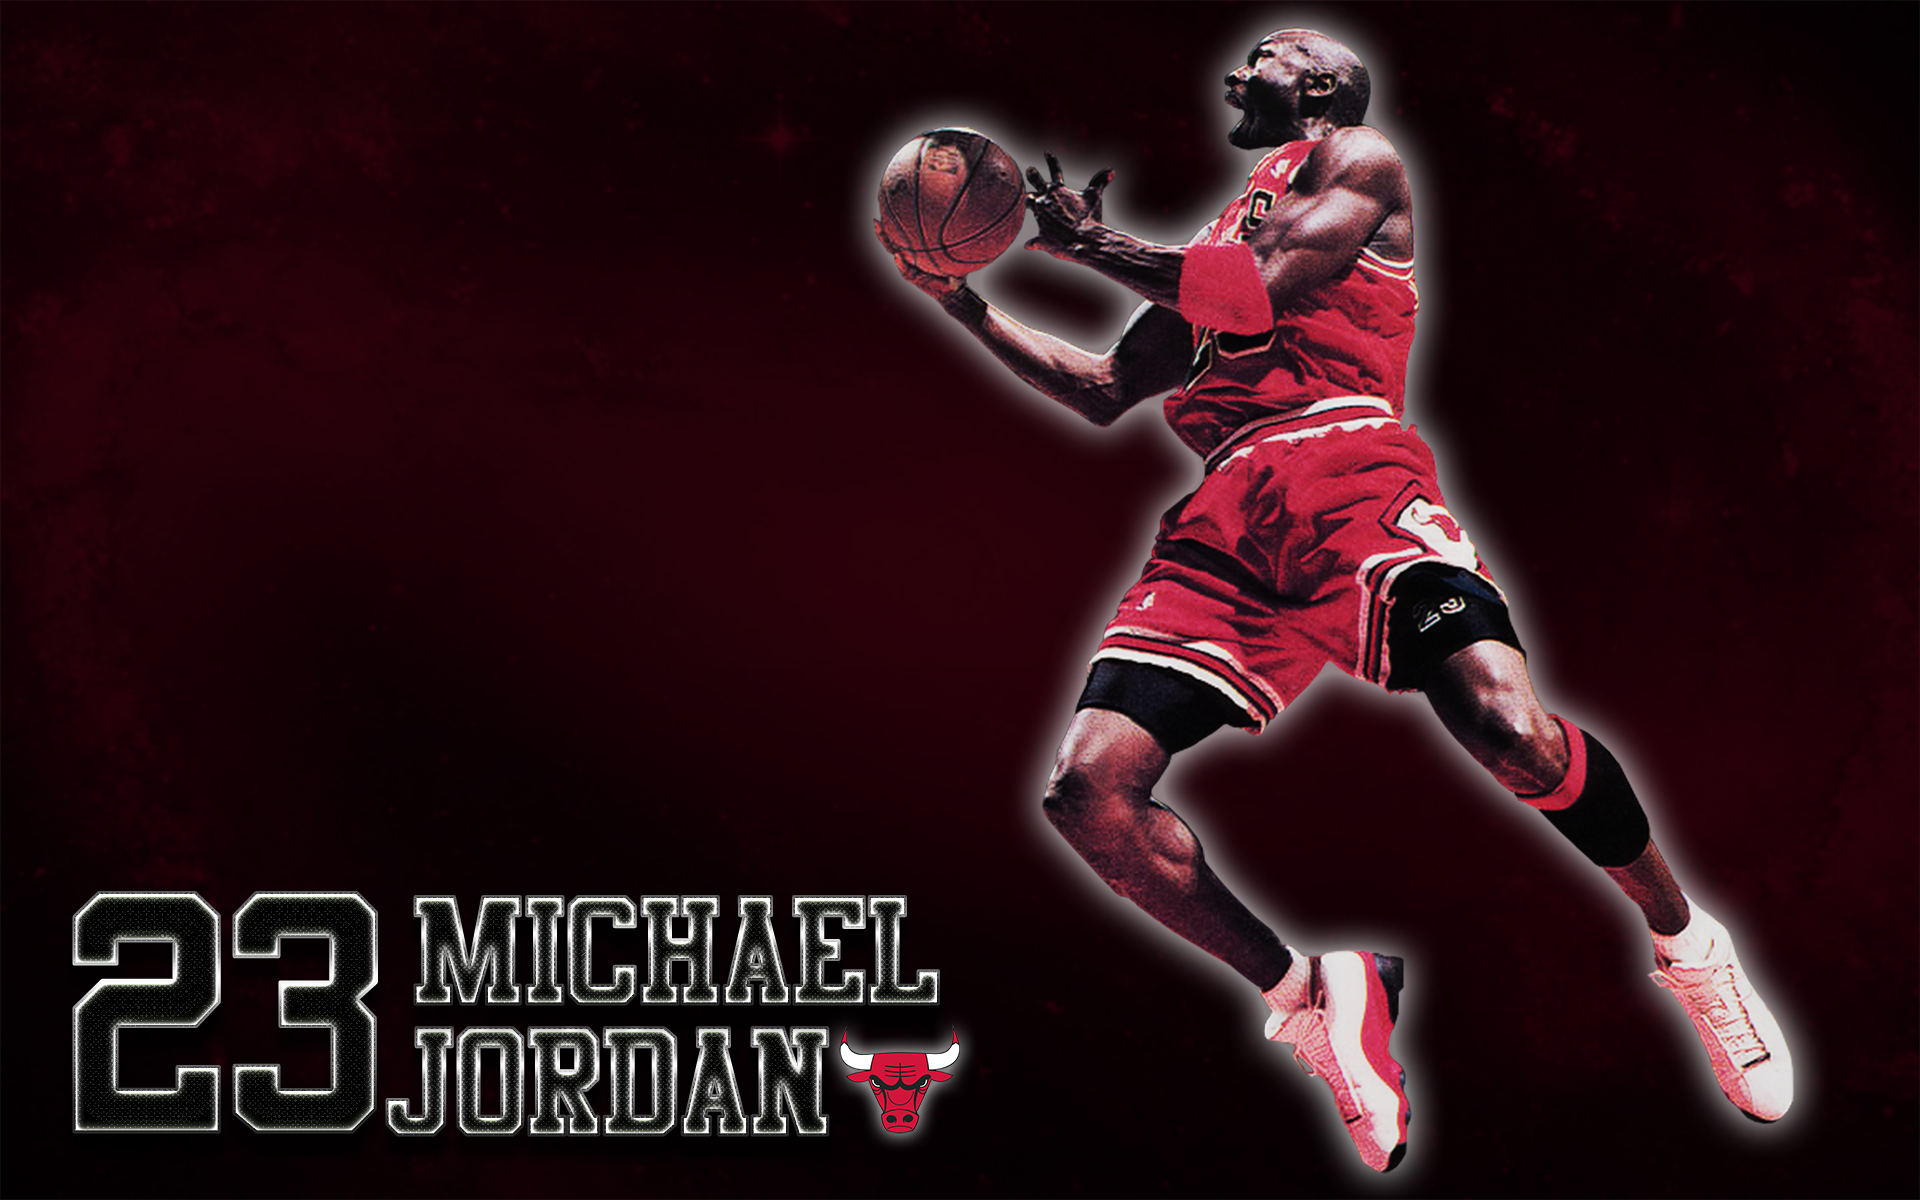 Awesome Chicago Bulls wallpaper Chicago Bulls wallpapers 1920x1200